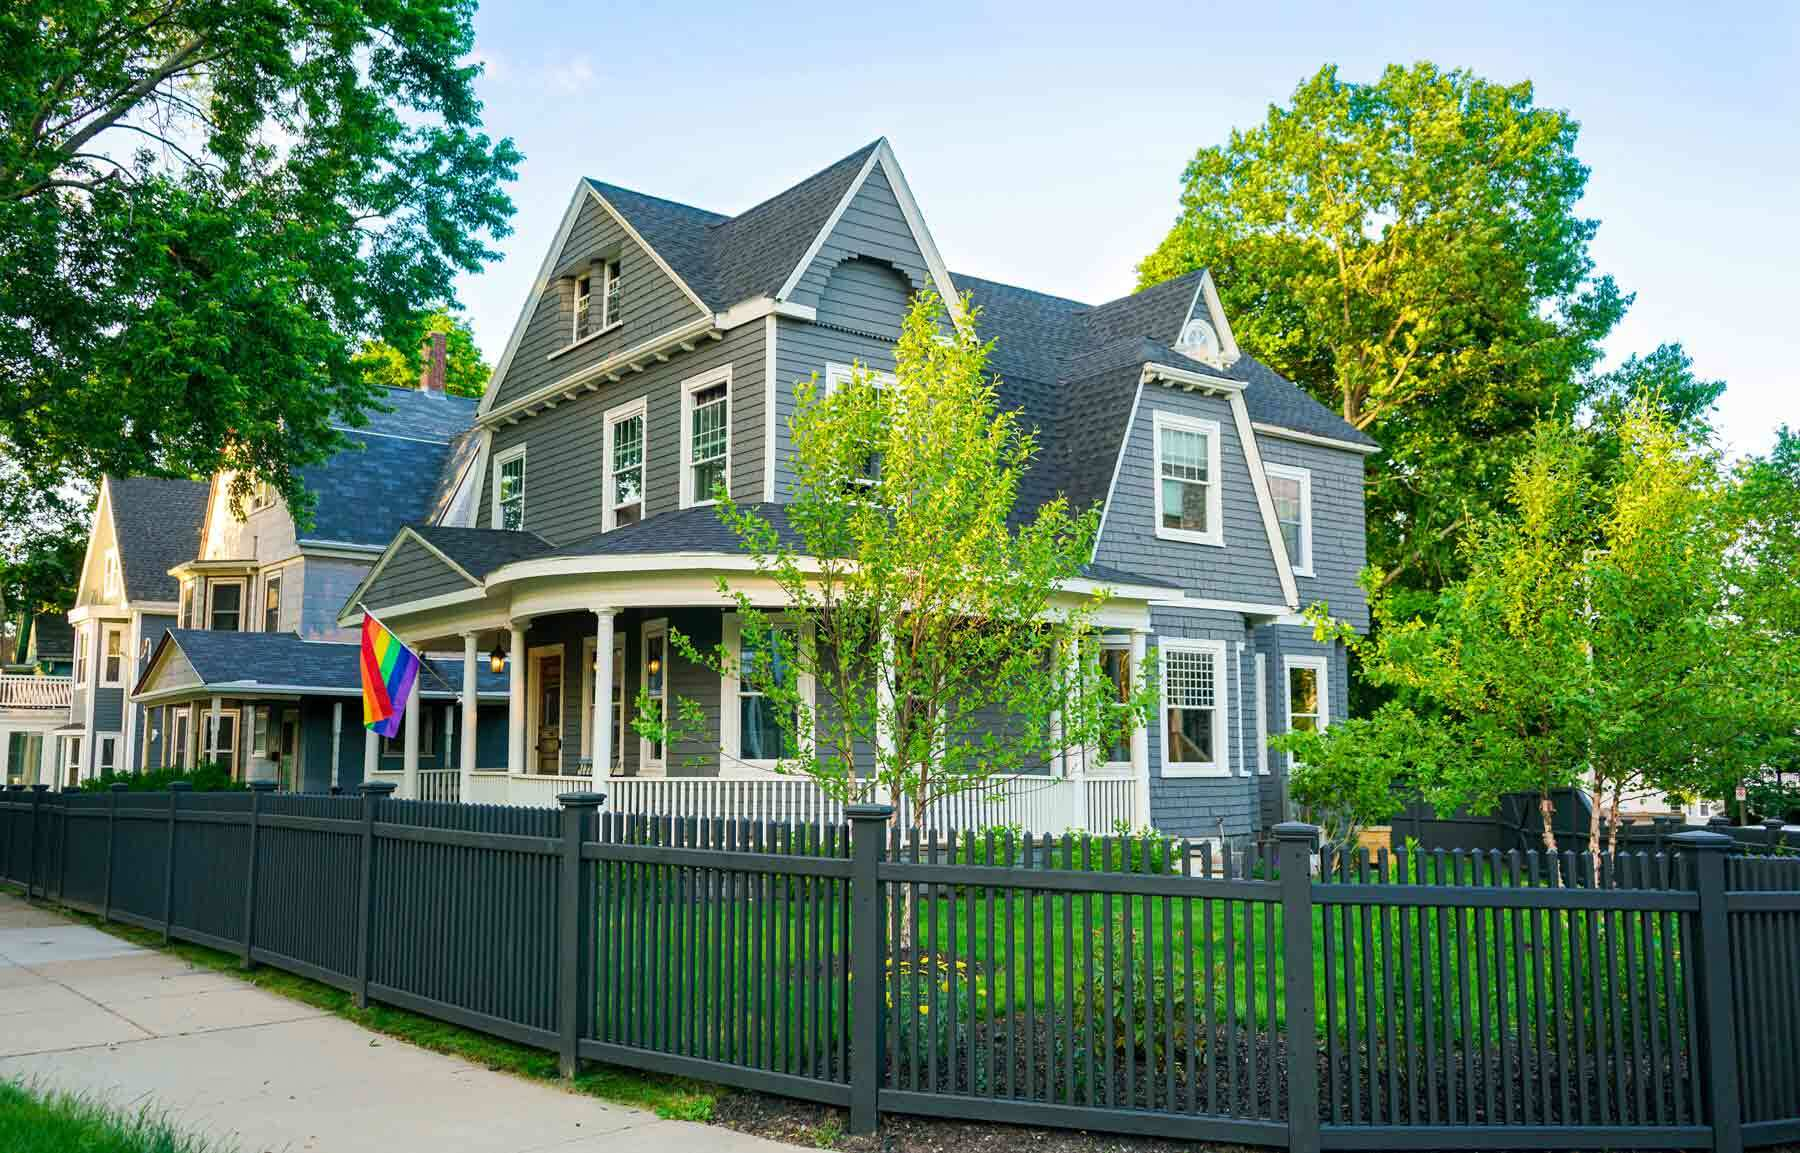 The St. Russell's 1893 Queen Anne Victorian home in Dorchester, Mass.